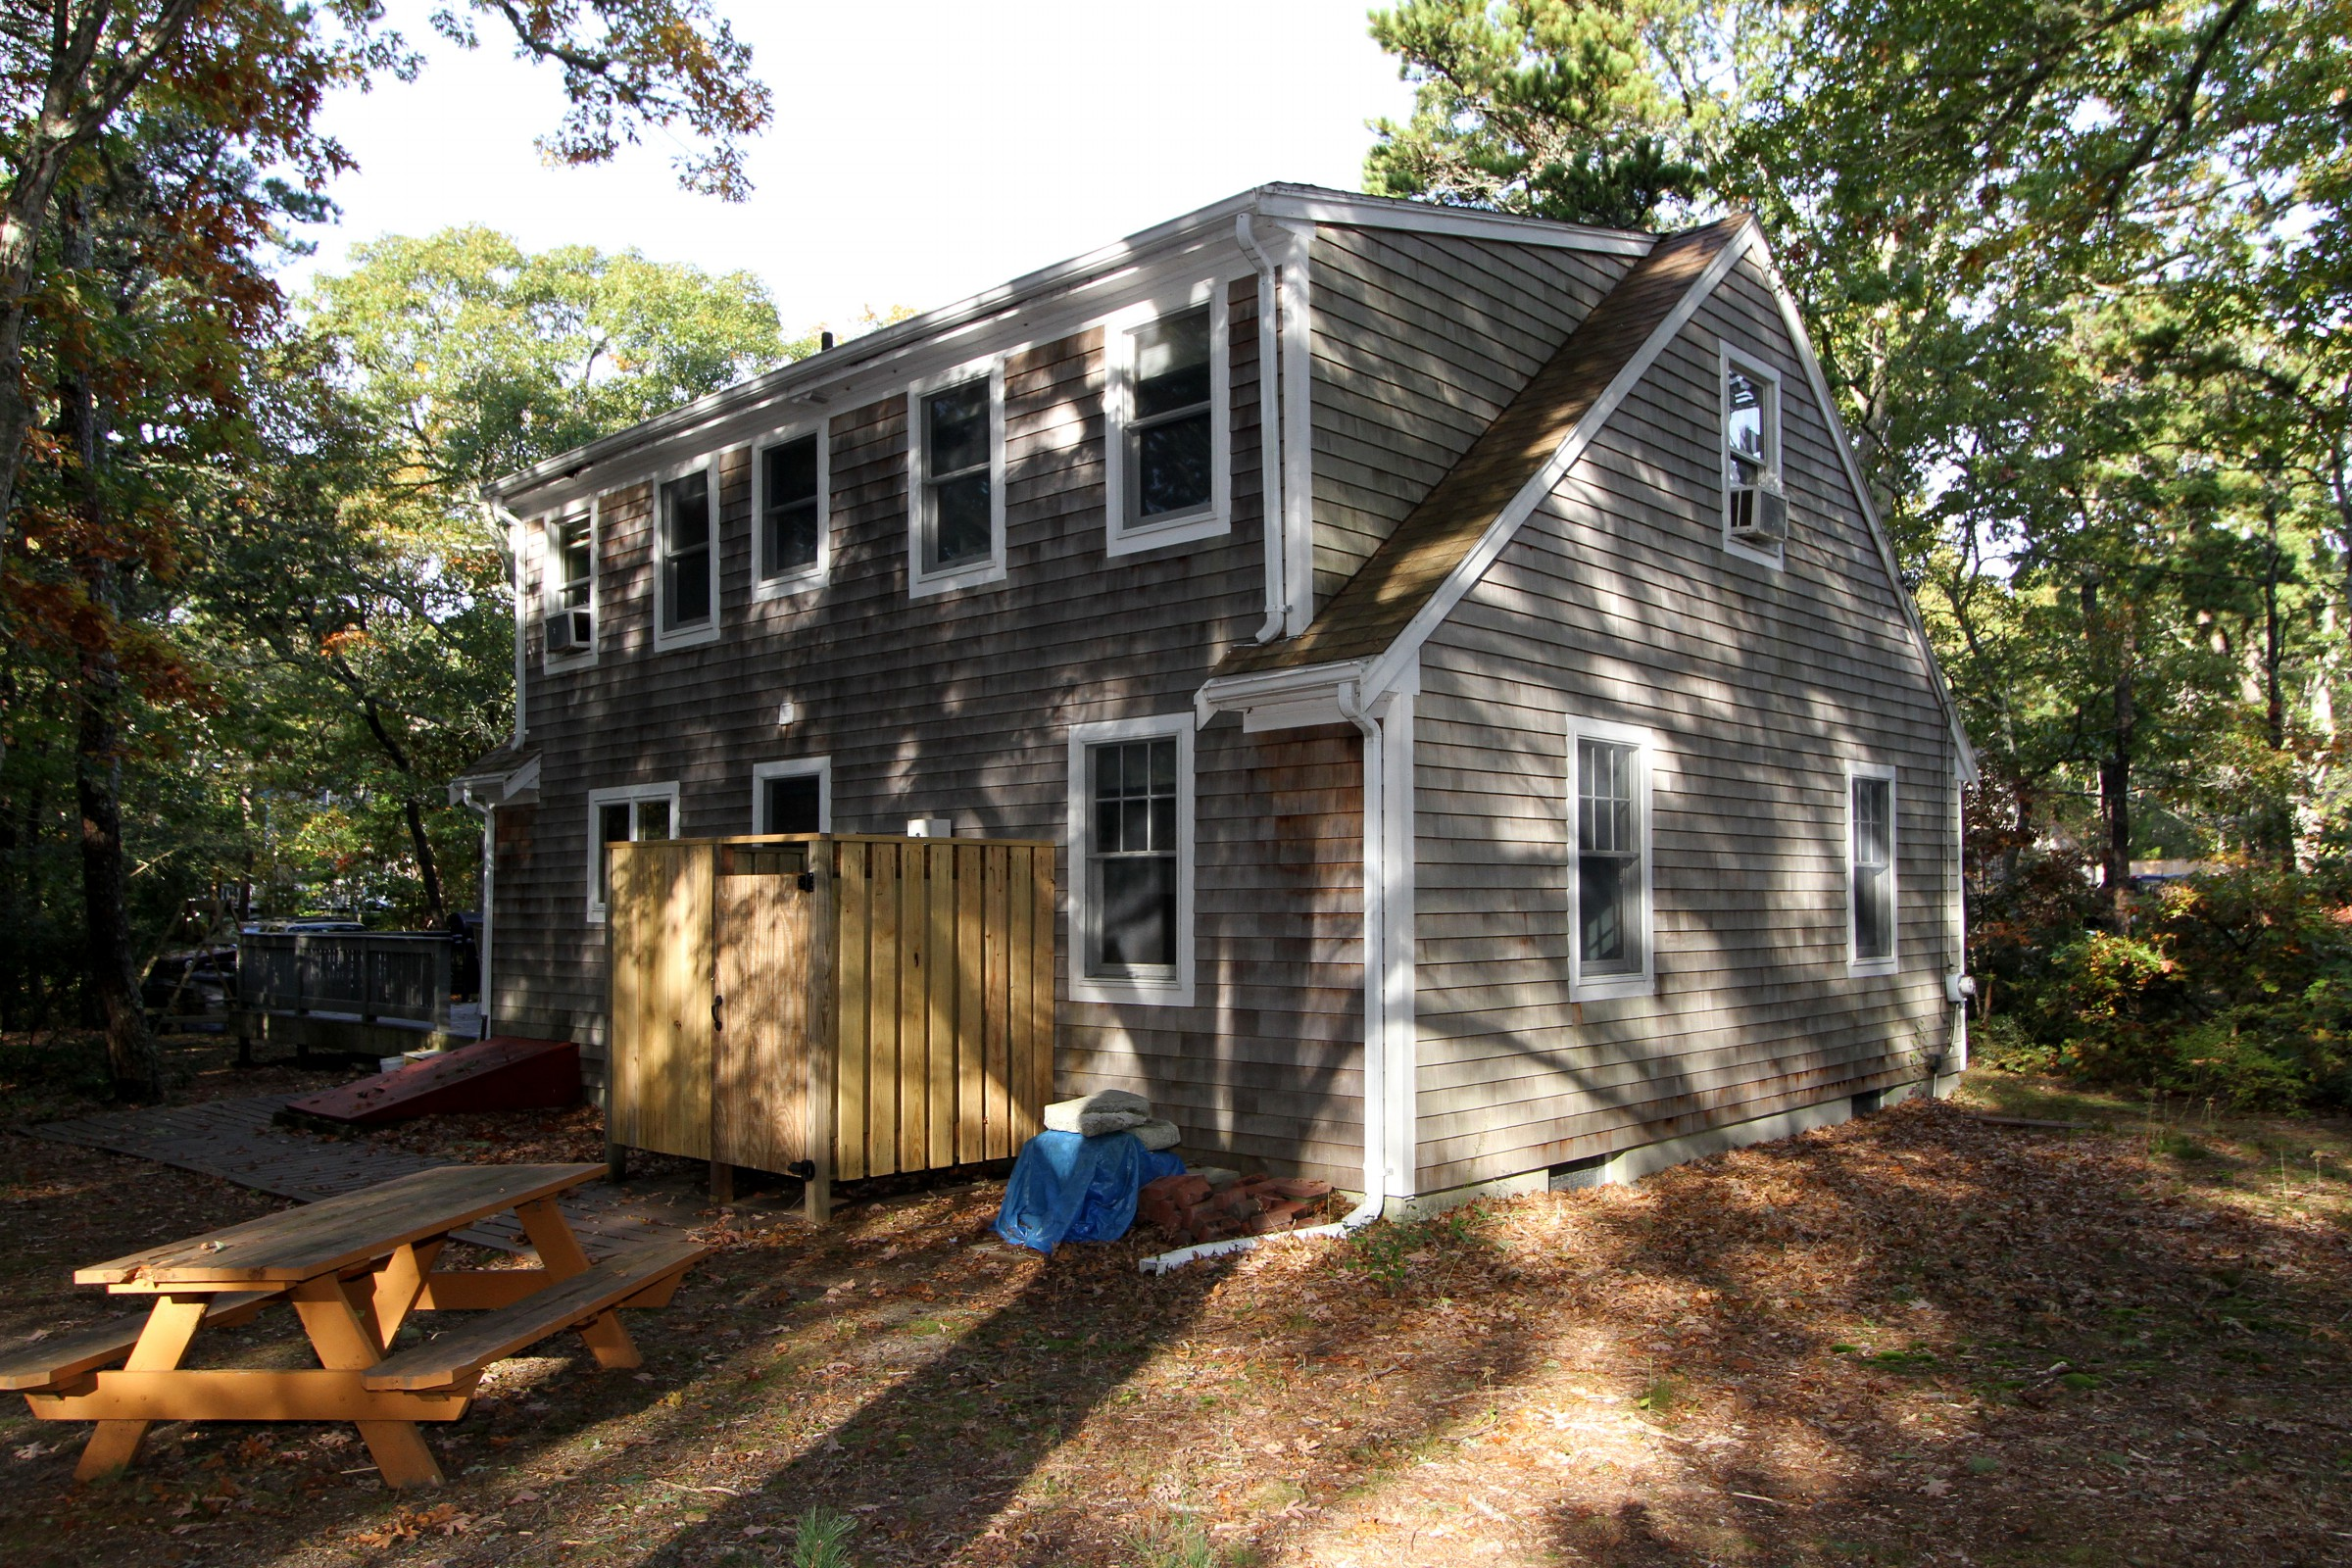 Cape cod home in the trees ra88792 redawning for Cabin rentals in cape cod ma